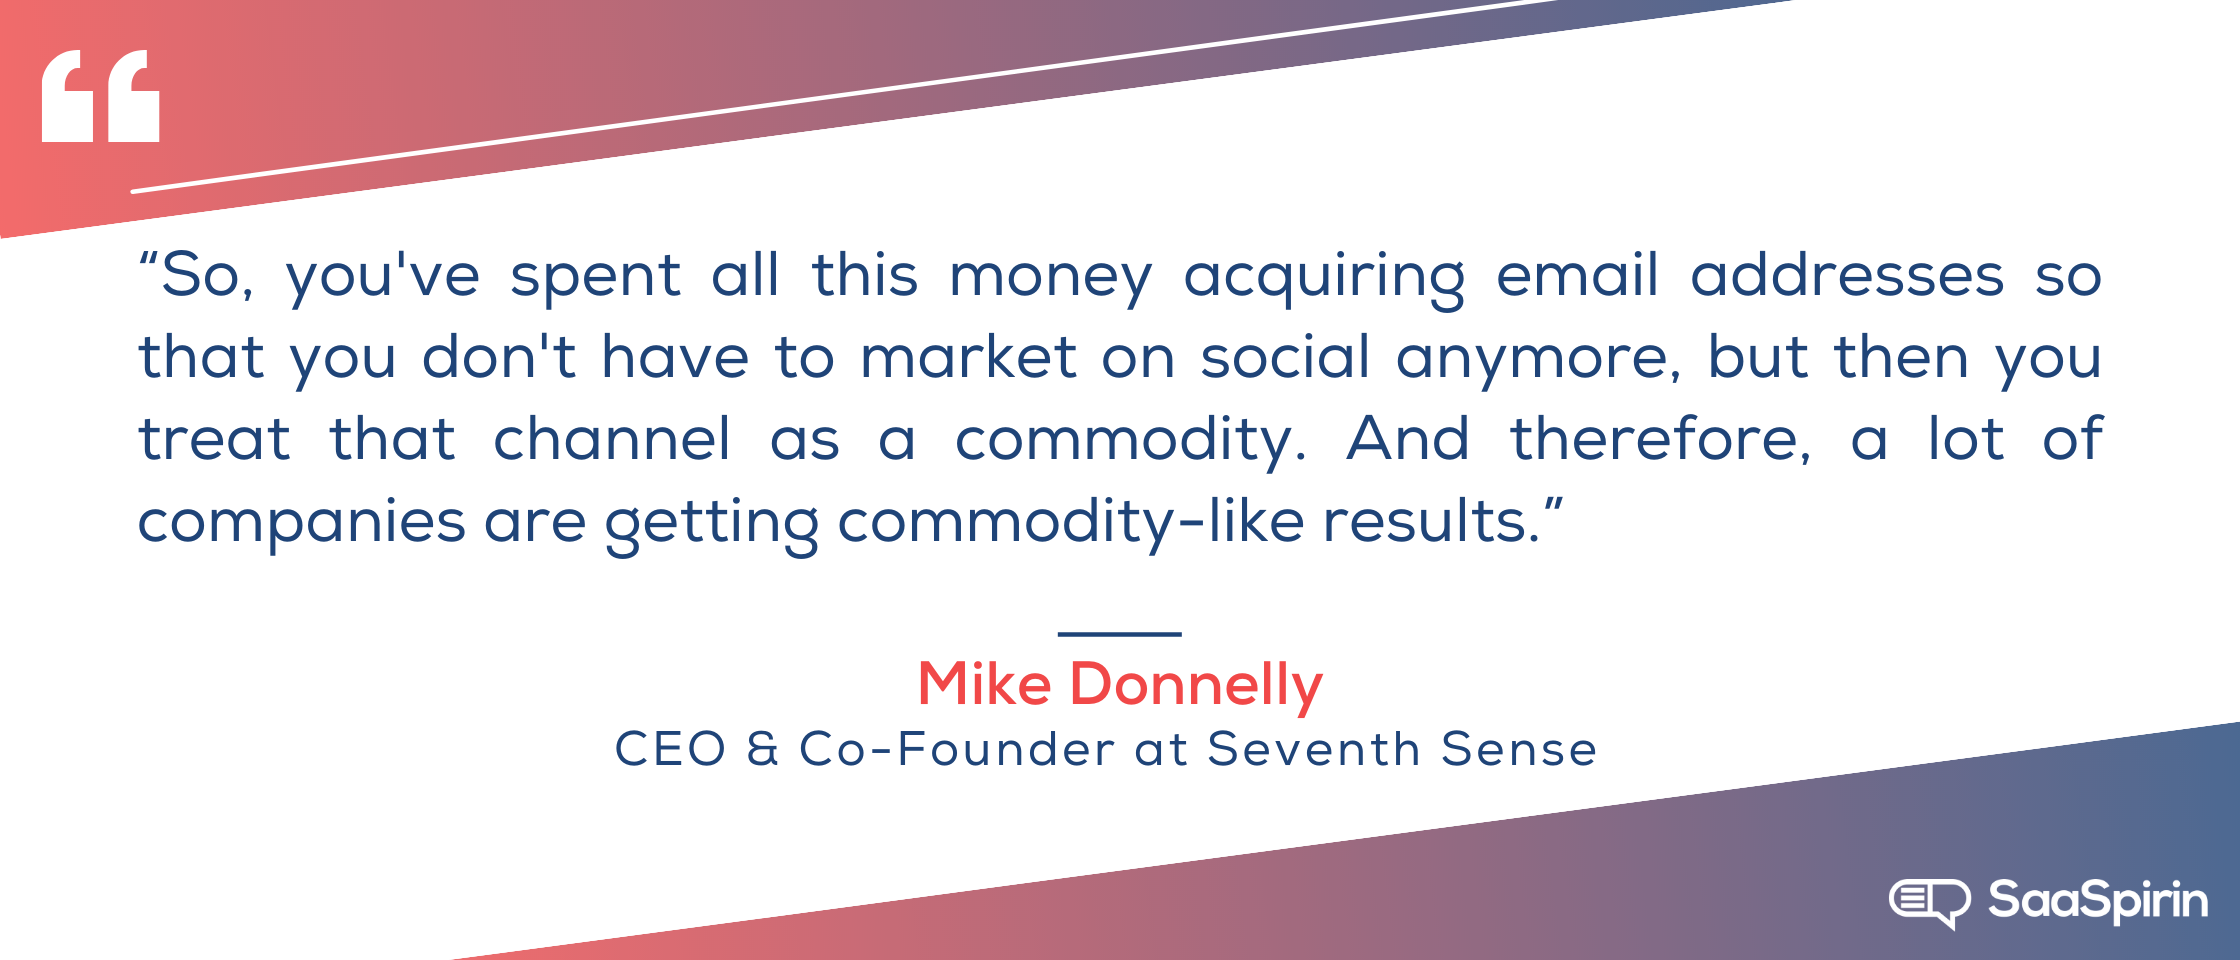 So-youve-spent-all-this-money-acquiring-email-addresses-so-that-you-dont-have-to-market-on-social-anymore-but-then-you-treat-that-channel-as-a-commodity-And-therefore-a-lot-of-companies-are-getting-commodity.png